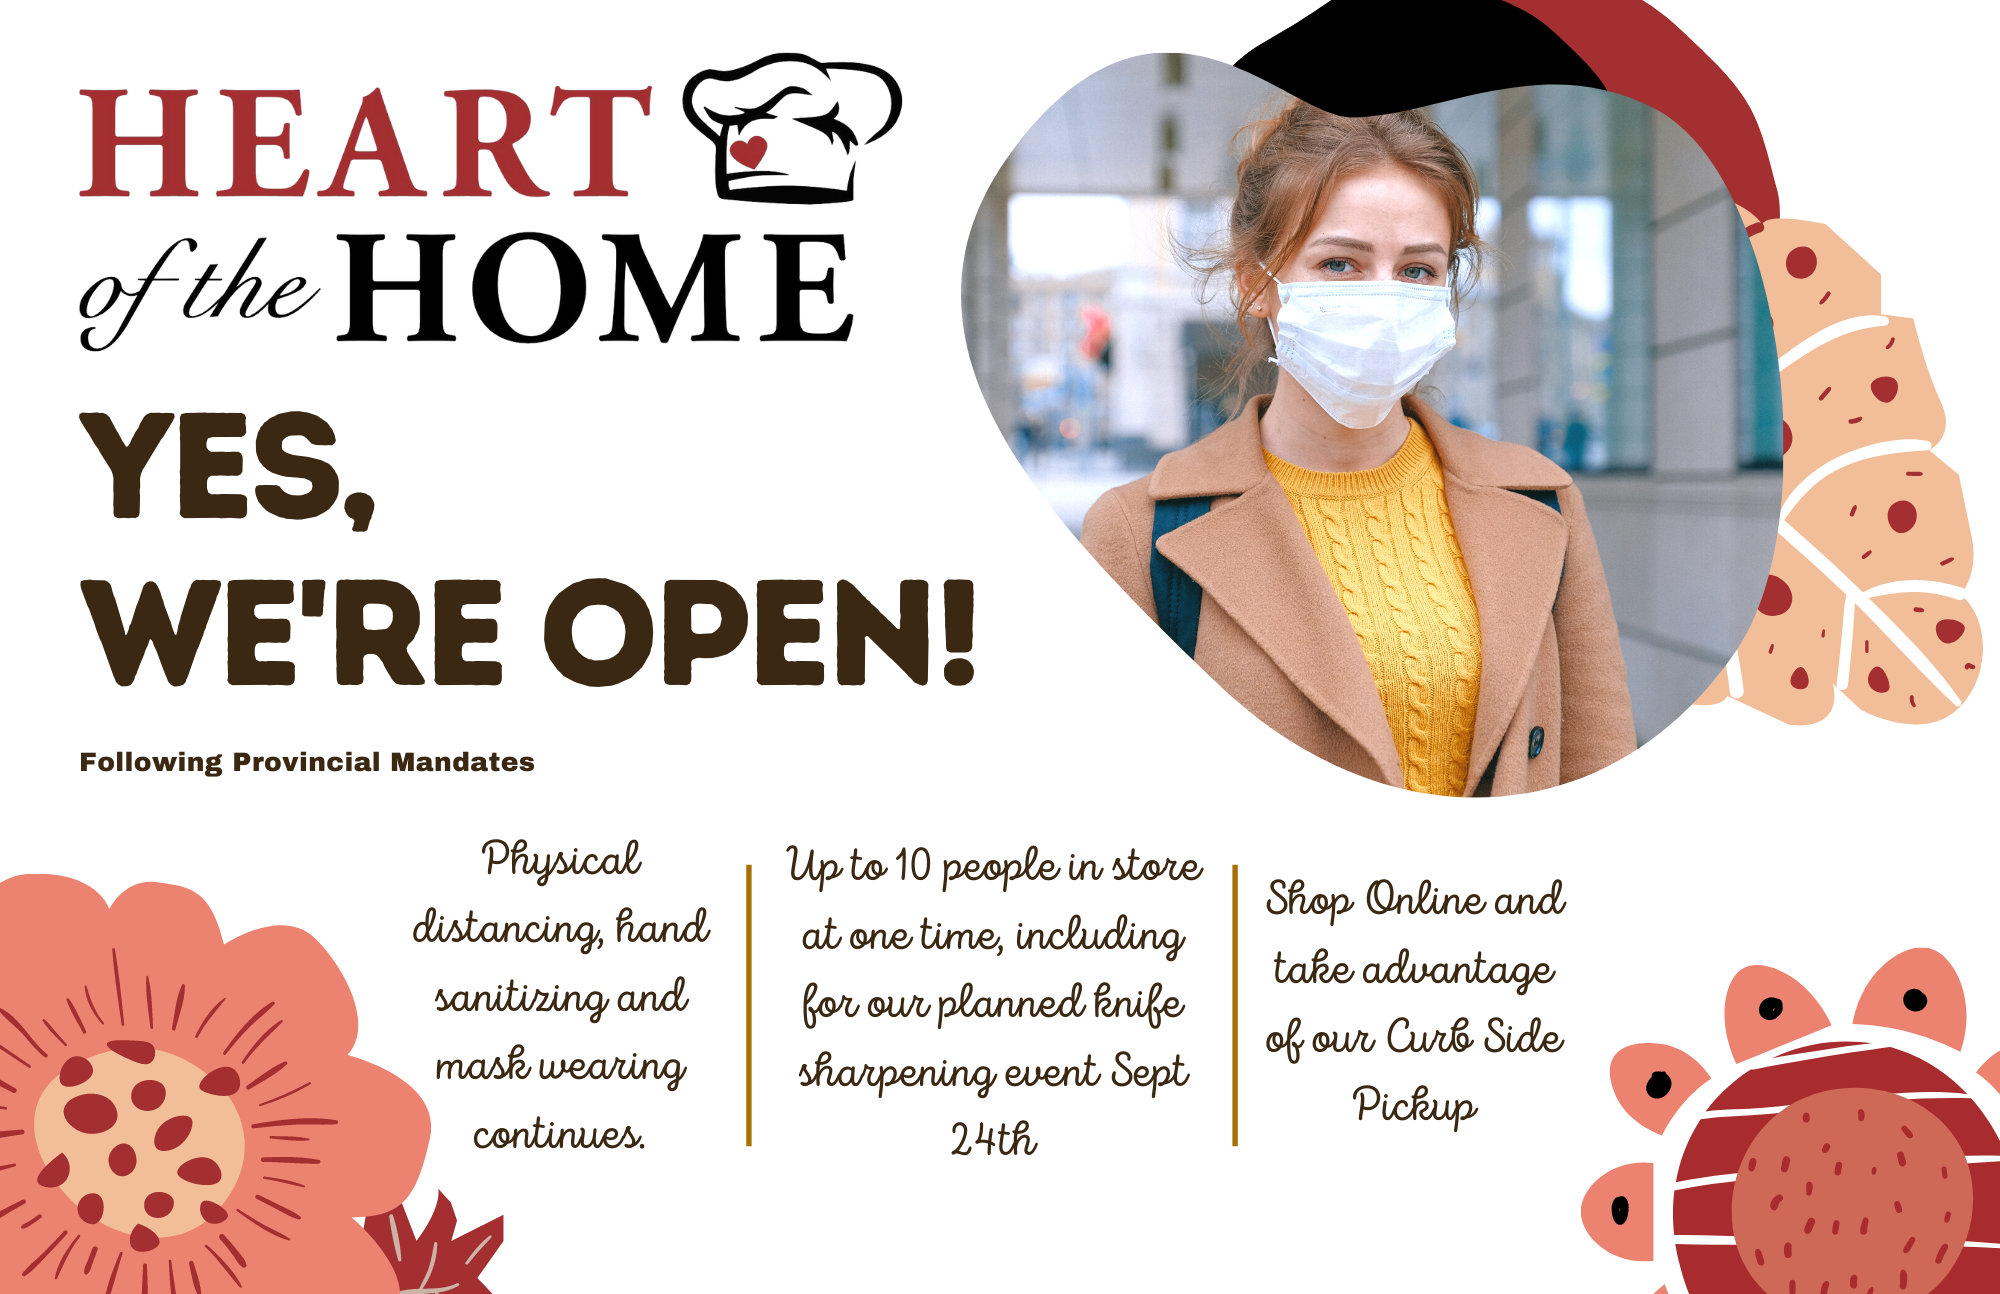 Updated Heart of the Home YEG Store Covid Protocols